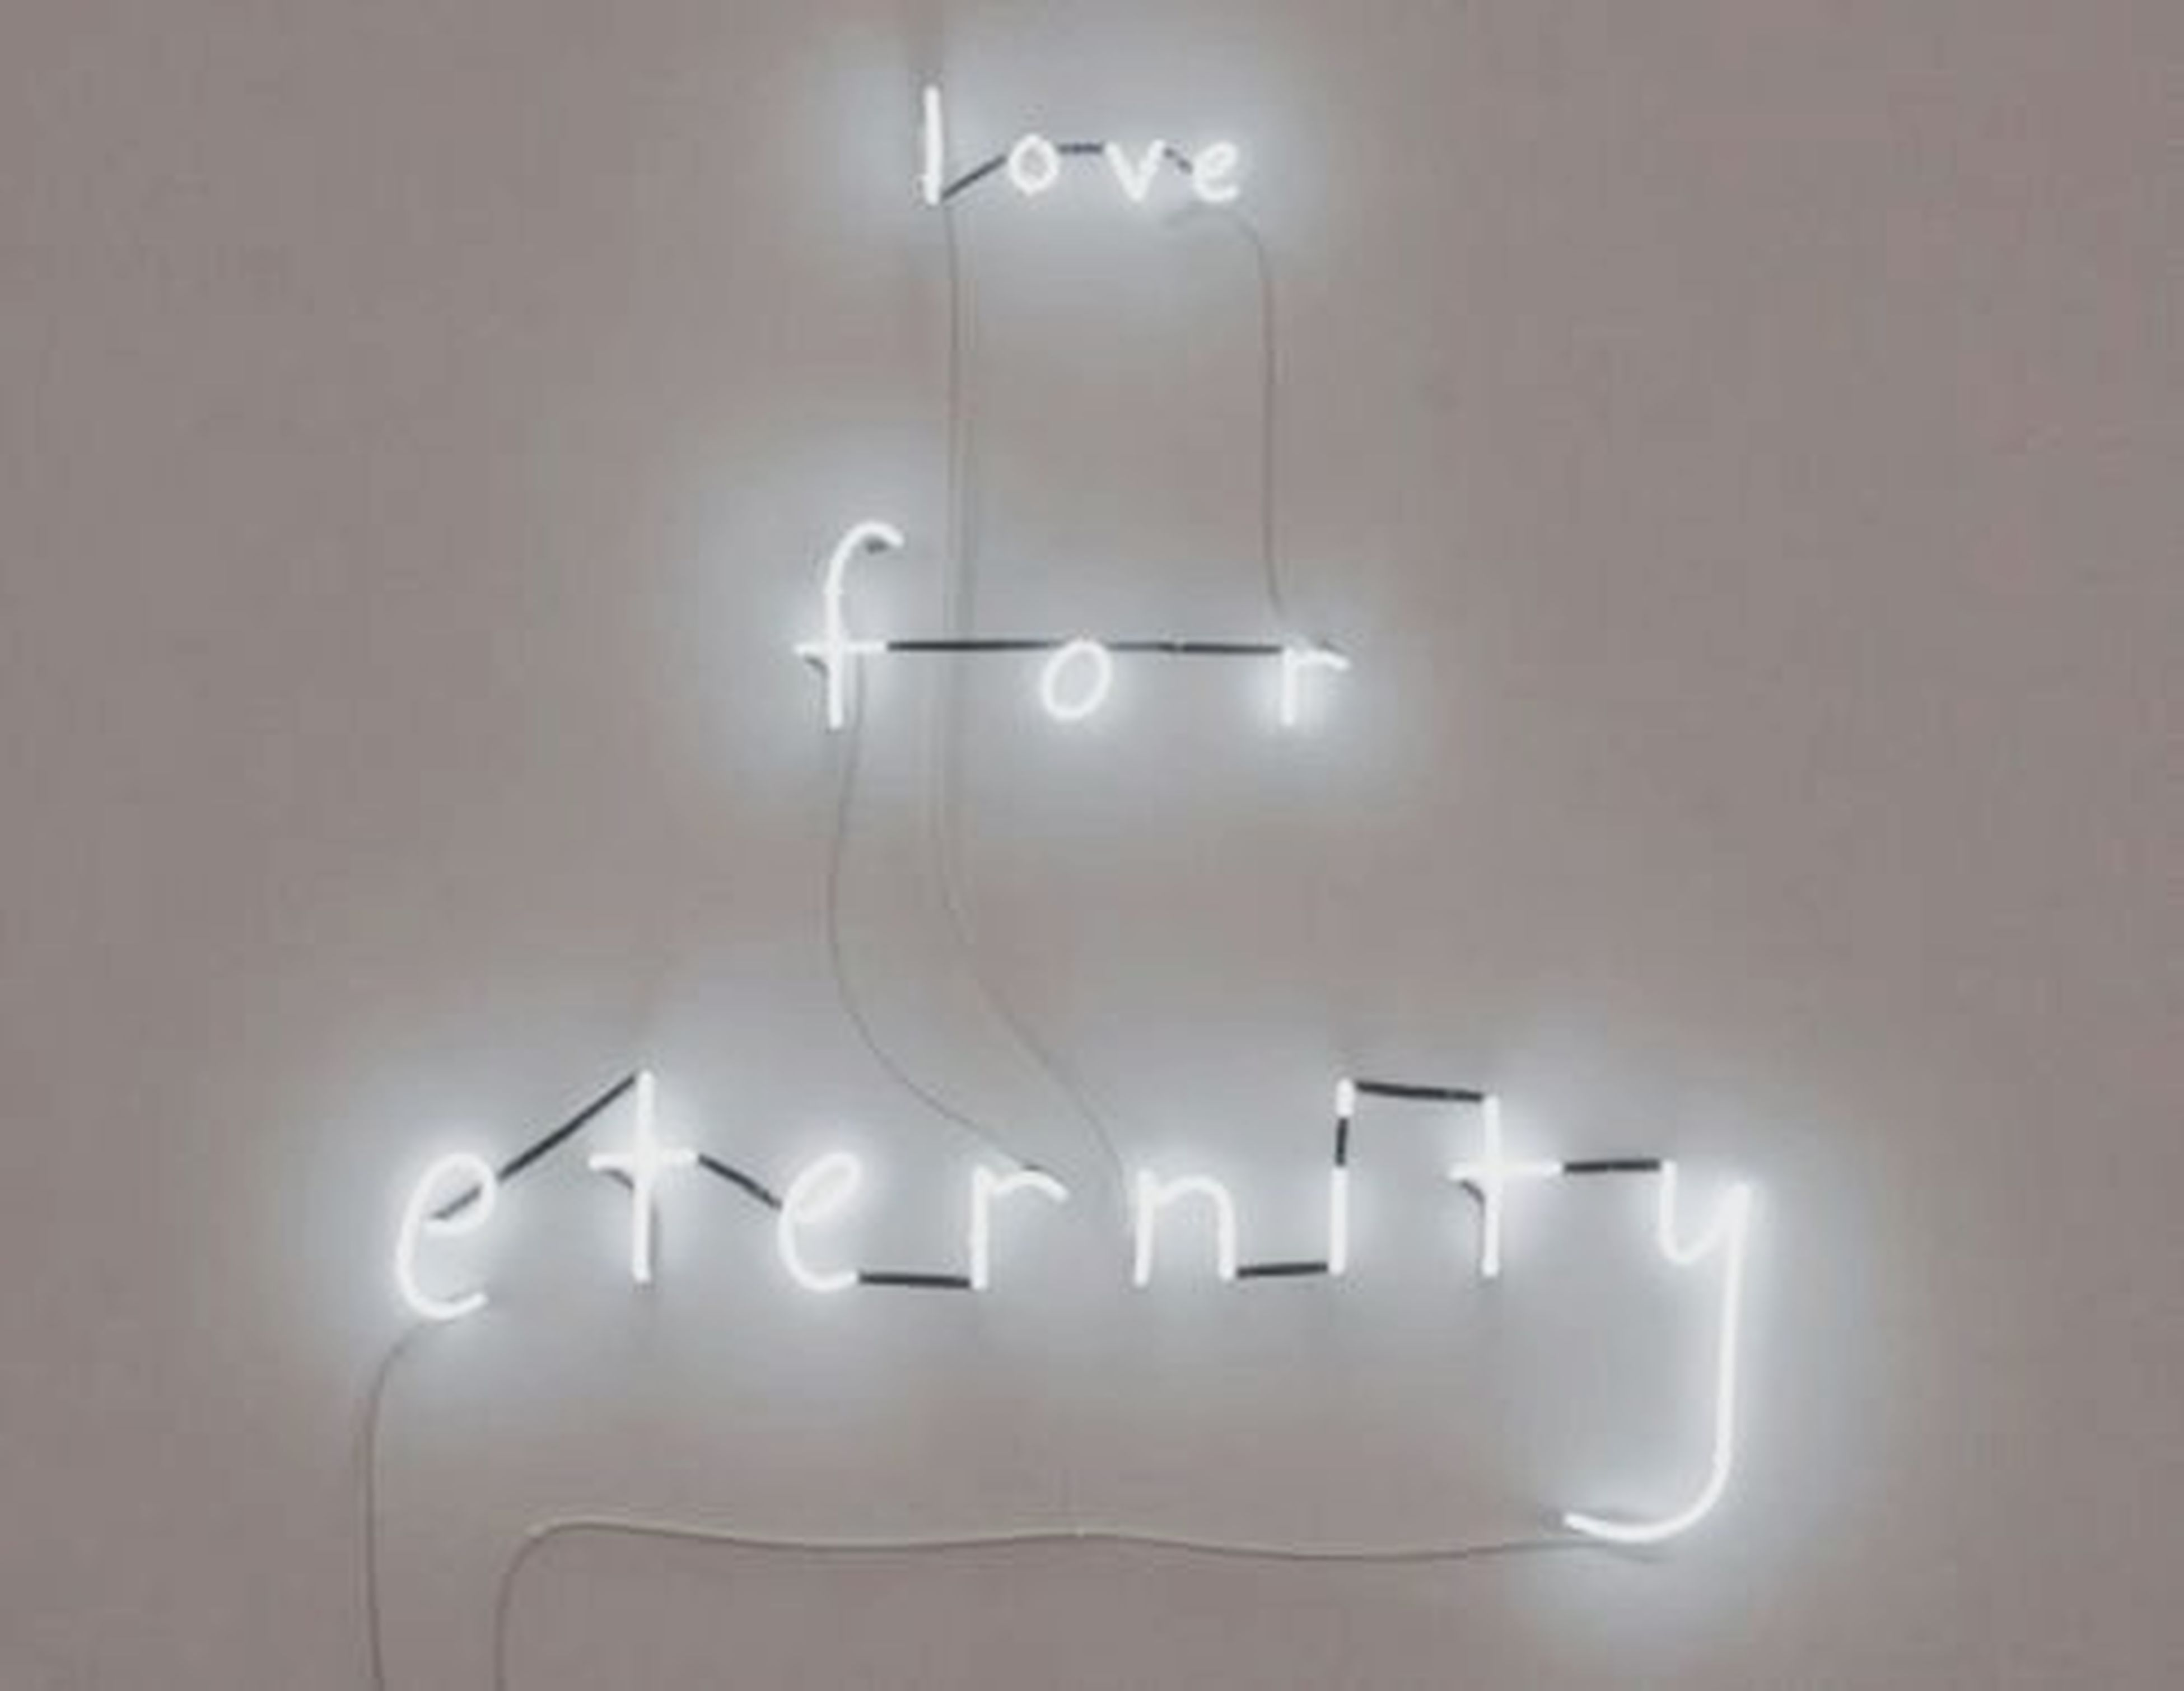 indoors, lighting equipment, illuminated, wall - building feature, home interior, electricity, electric lamp, hanging, electric light, ceiling, lamp, light - natural phenomenon, decoration, domestic room, wall, no people, room, glowing, technology, white color